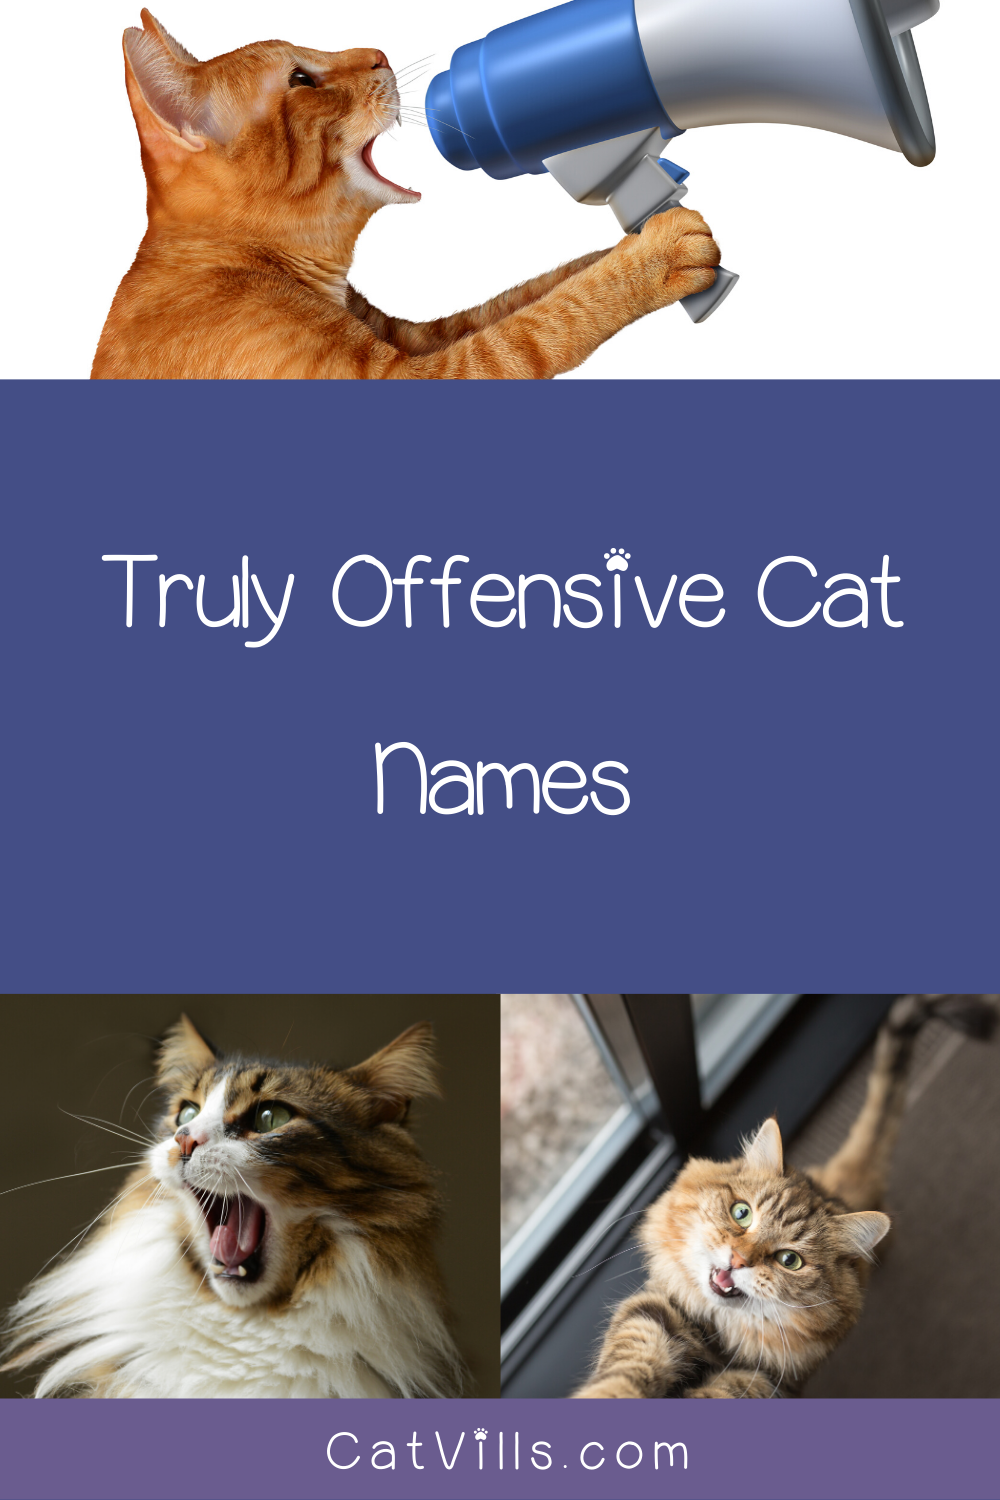 10 Inappropriate Names to Call a Cat Cat names, Names